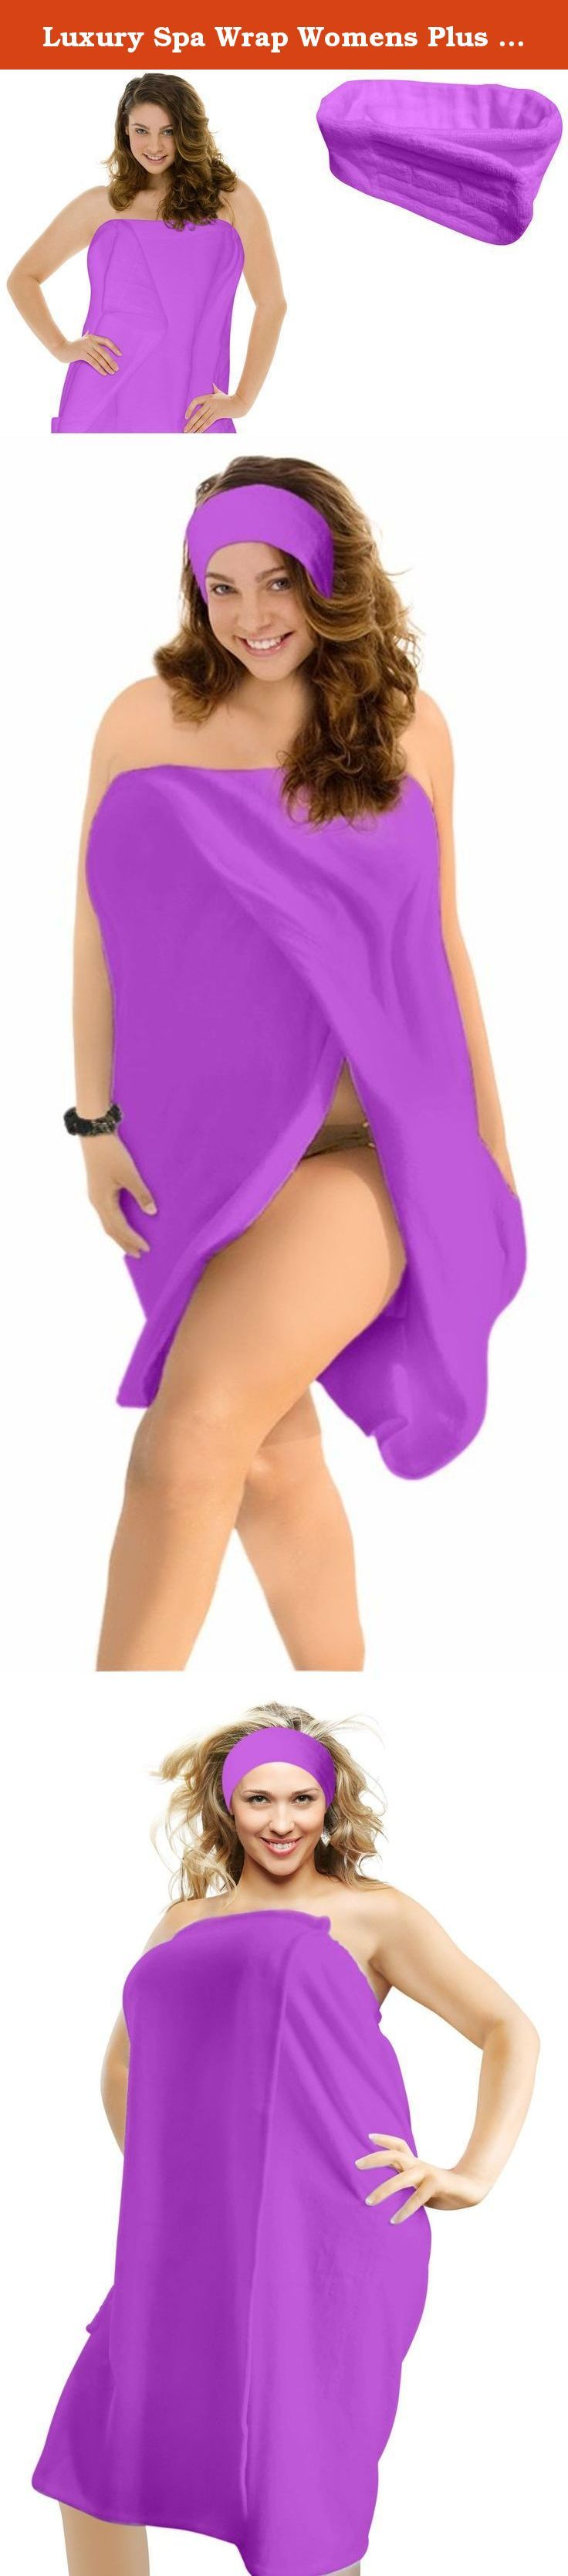 Luxury Spa Wrap Womens Plus Size Snap Bath Towel Wrap (4XL Plus Size 3X 4X, Purple). Finally a graceful luxurious spa wrap that fits not only womens standard size but also plus size women beautifully without wardrobe malfunctions! Available in soft cotton terry velour with adjustable snap close at front (not more scratchy velcro) and elastic for a comfortable fit. Also popular as a swim cover up, dorm gown, gym bath wrap ... you may find yourself wanting to stay in this all day long…